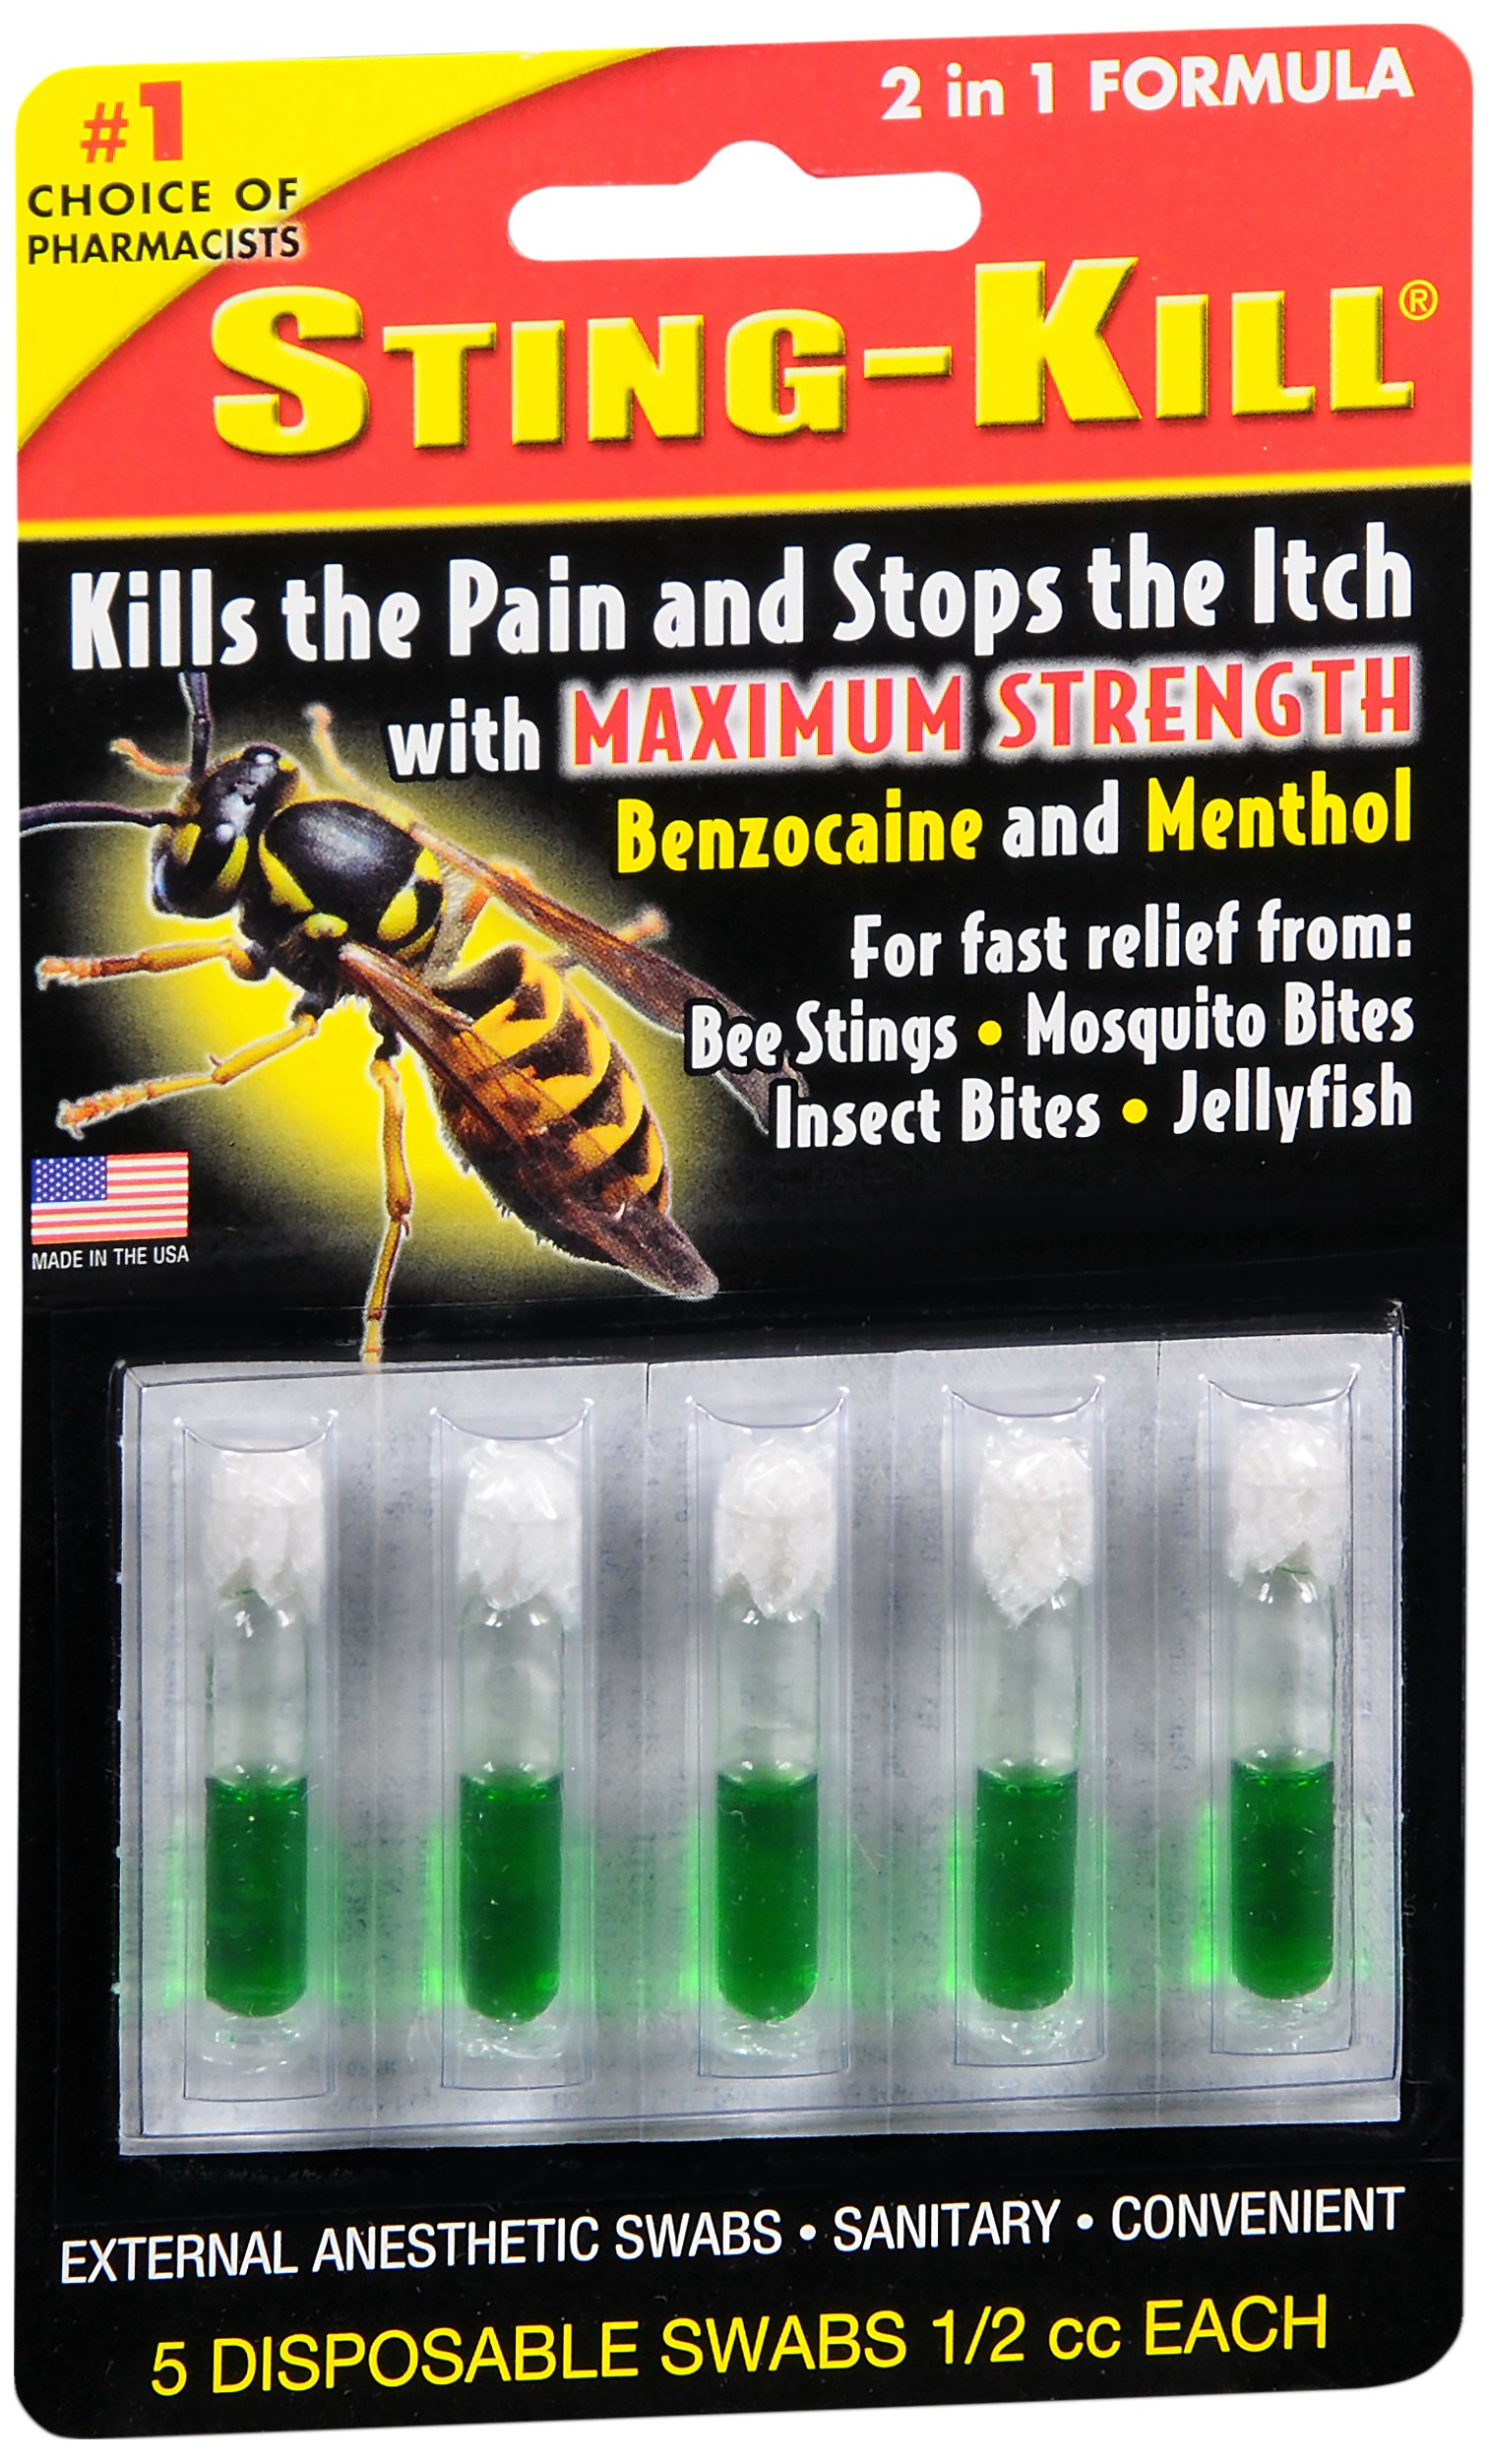 Special pack of 6 STING KILL DISPOSABLE SWABS 5 per pack